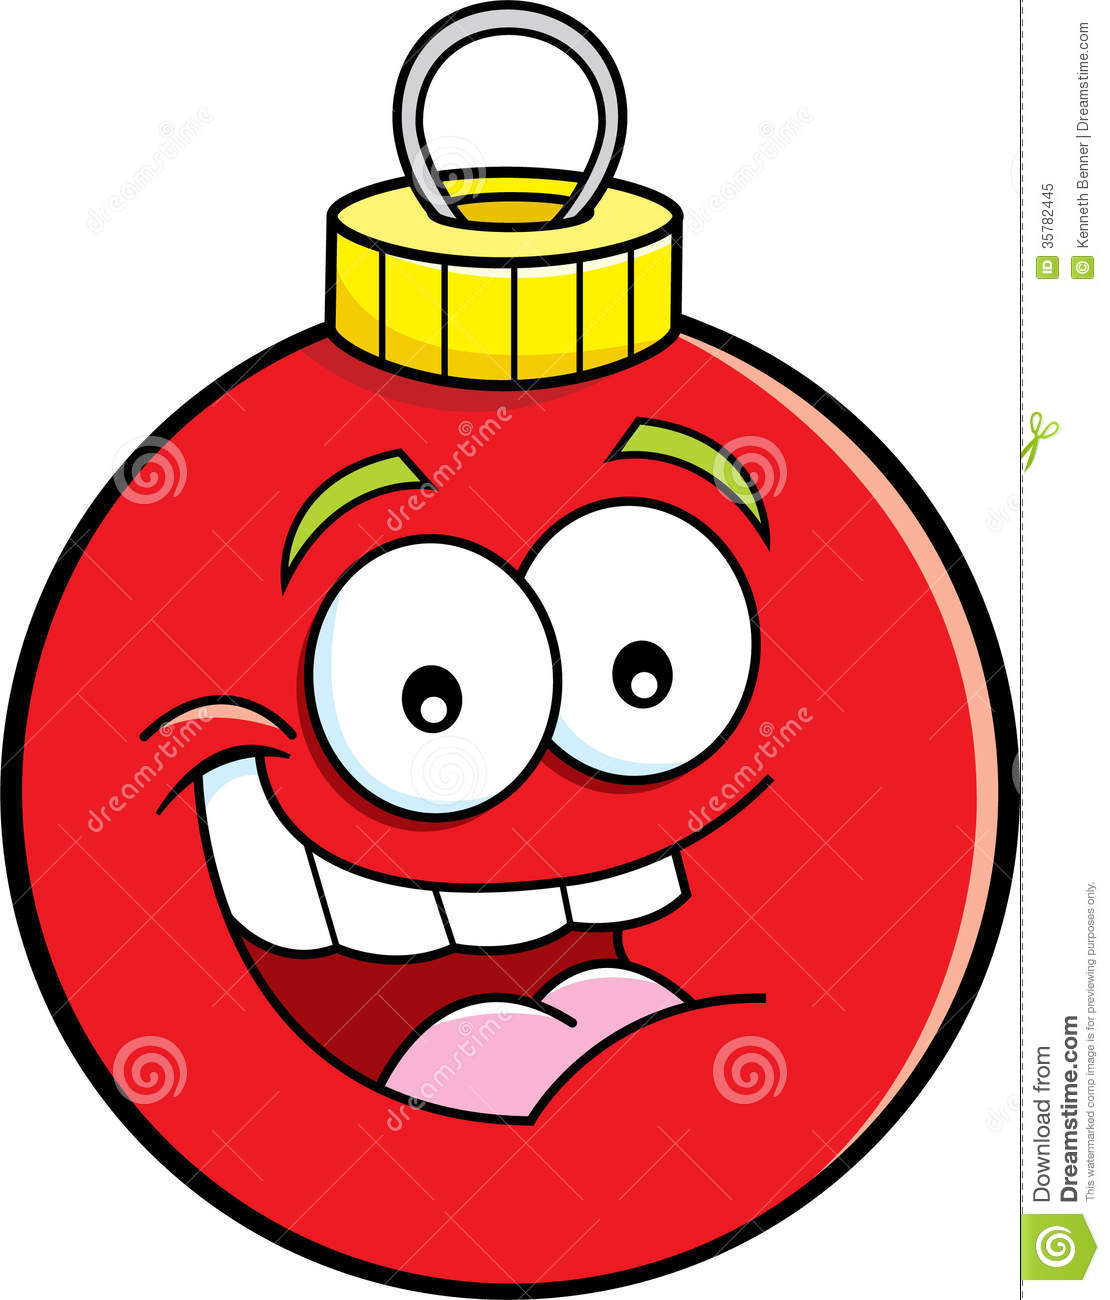 Cartoon Christmas Ornament Illustration Smiling Stock Illustrations